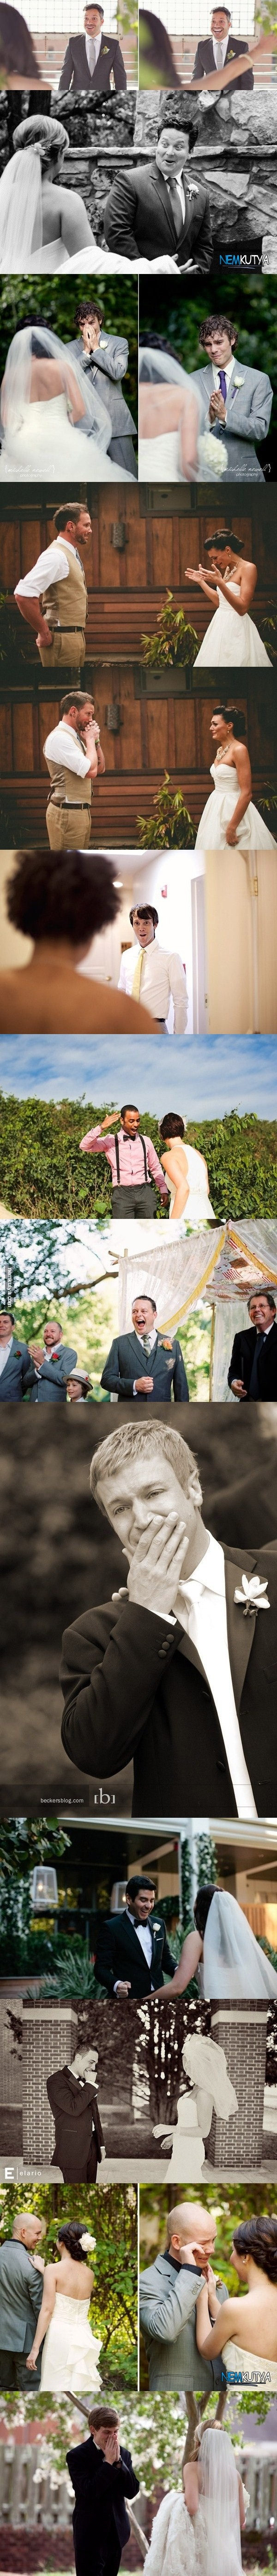 Grooms reactions on wifes wedding dresses. LOVE